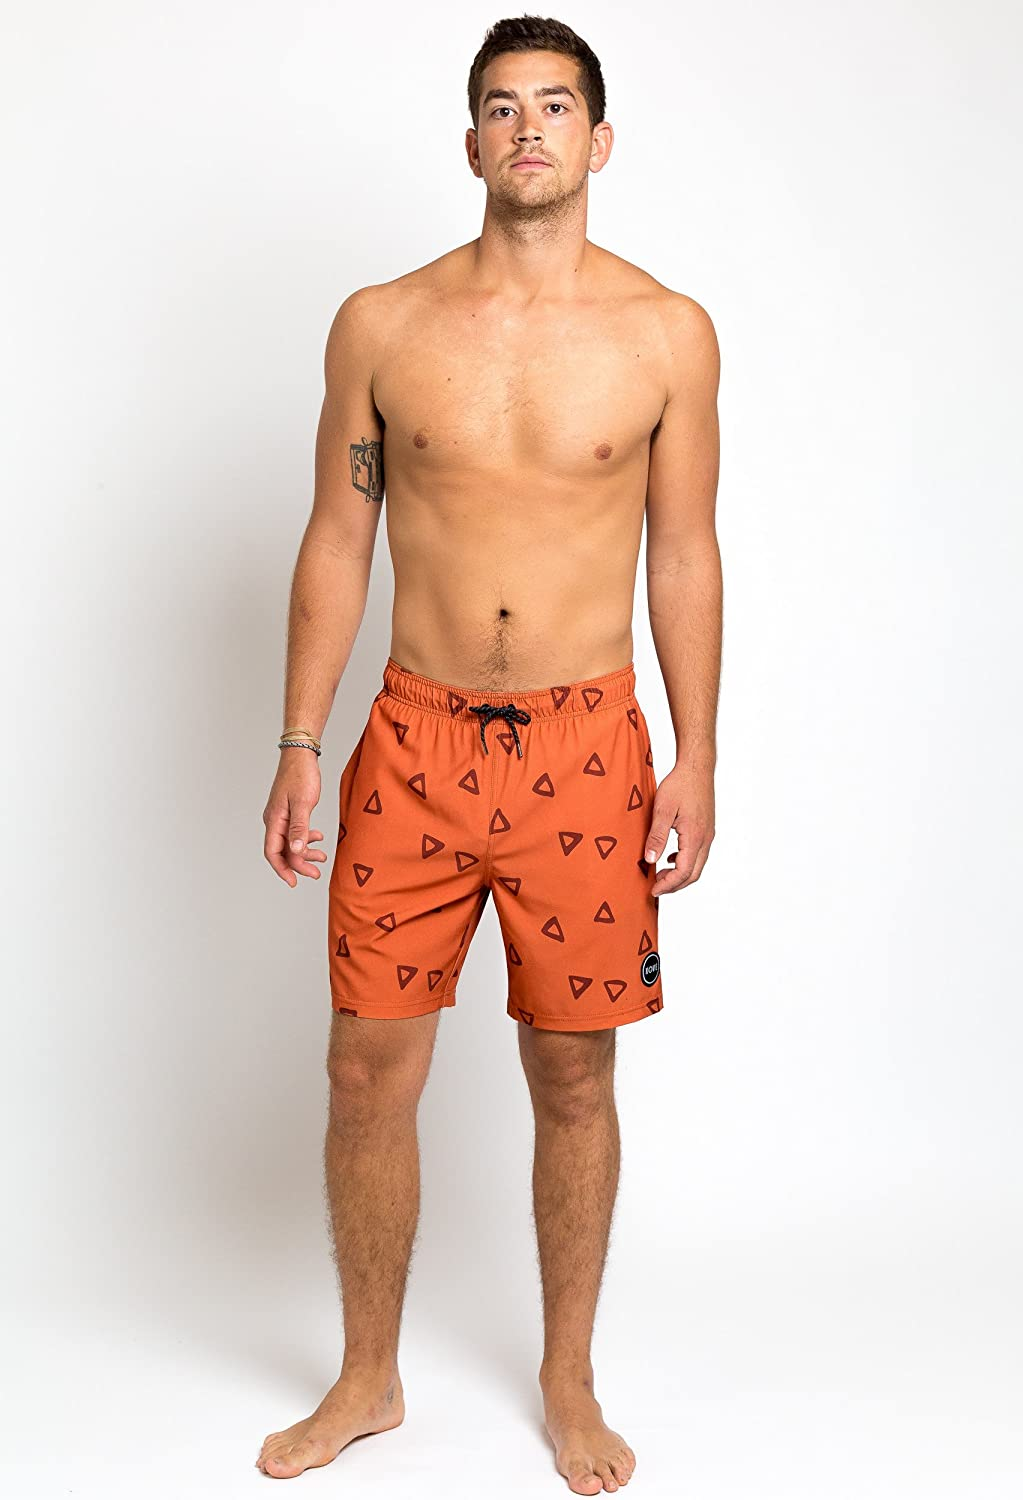 Kove Mondo Boardshorts Recylced Mens Quick Dry 4 Way Stretch 20 Matching Swimsuit